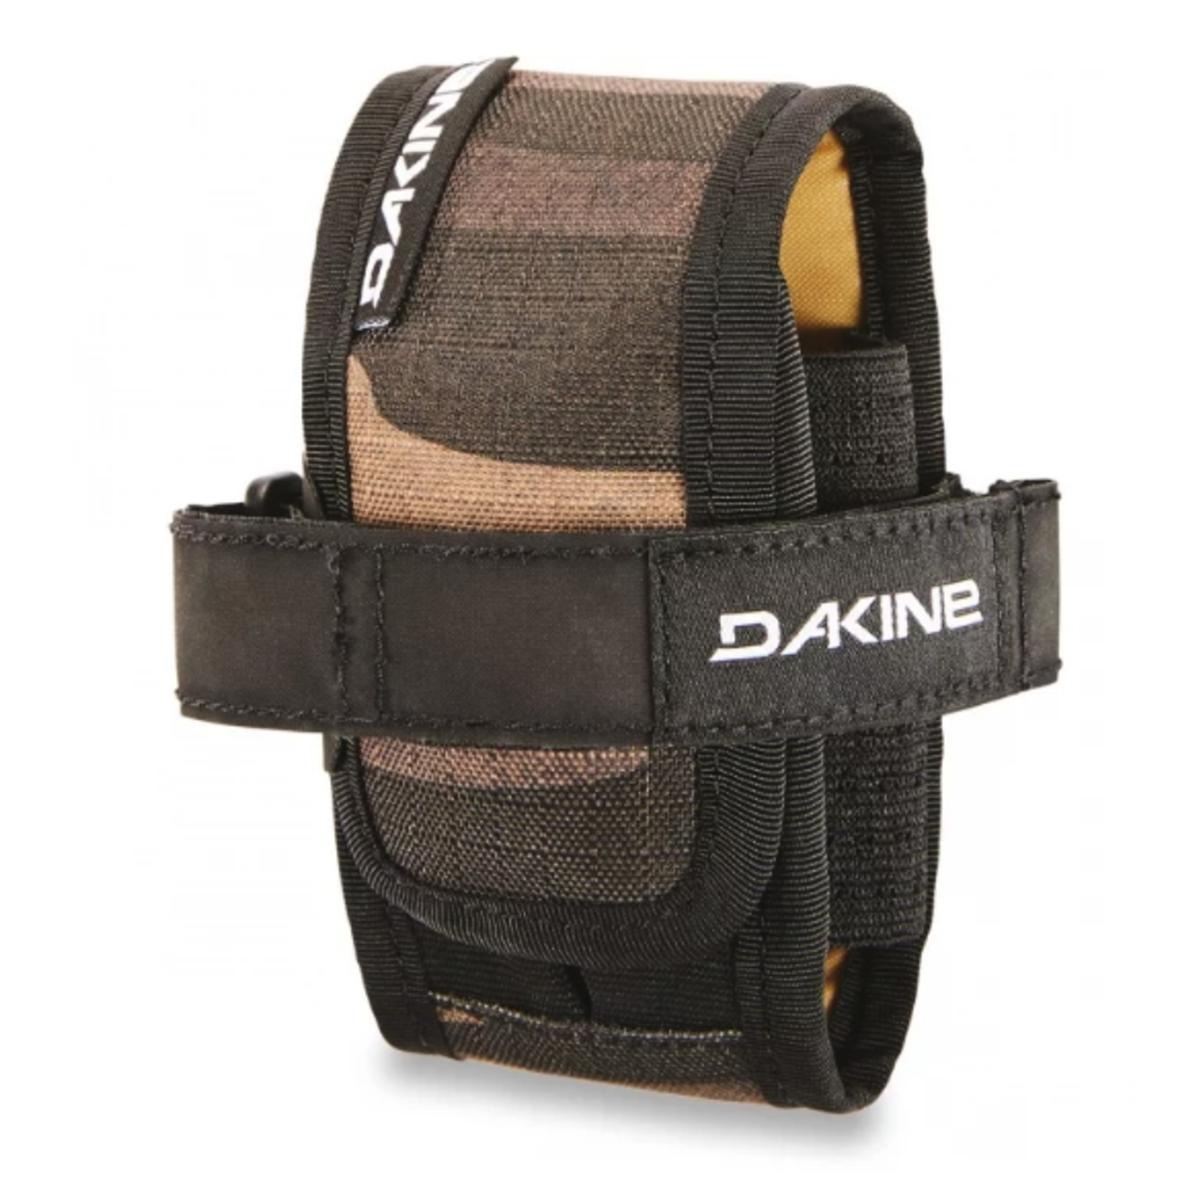 Dakine Hot Laps Gripper Bike Bag